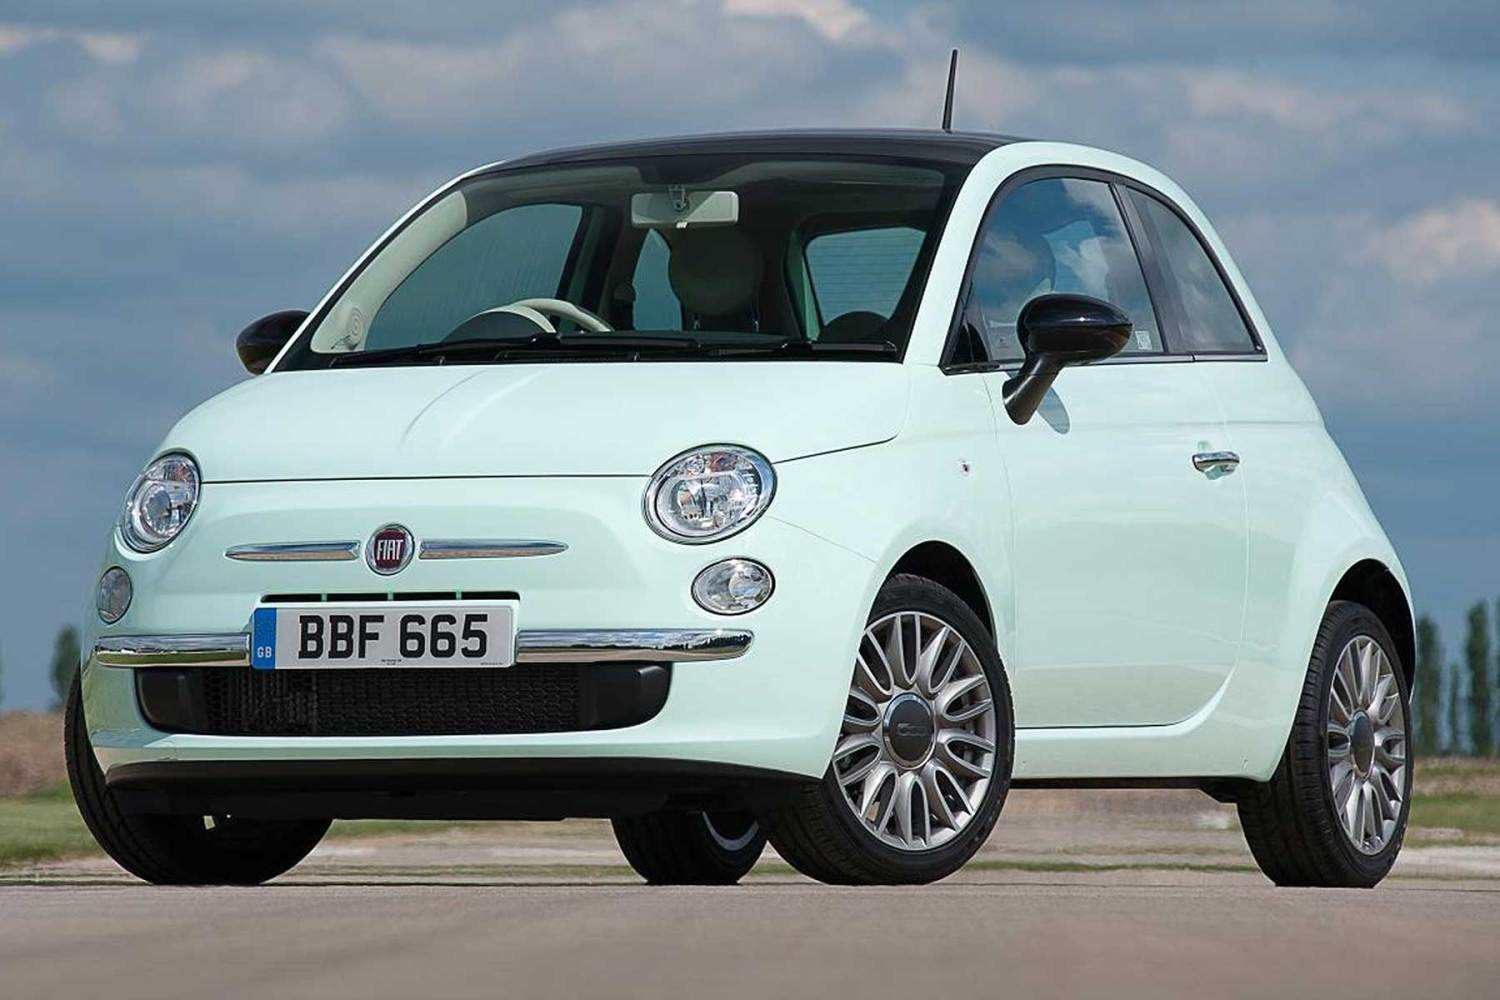 The cheapest cars to insure for 17-18 year olds: Fiat 500